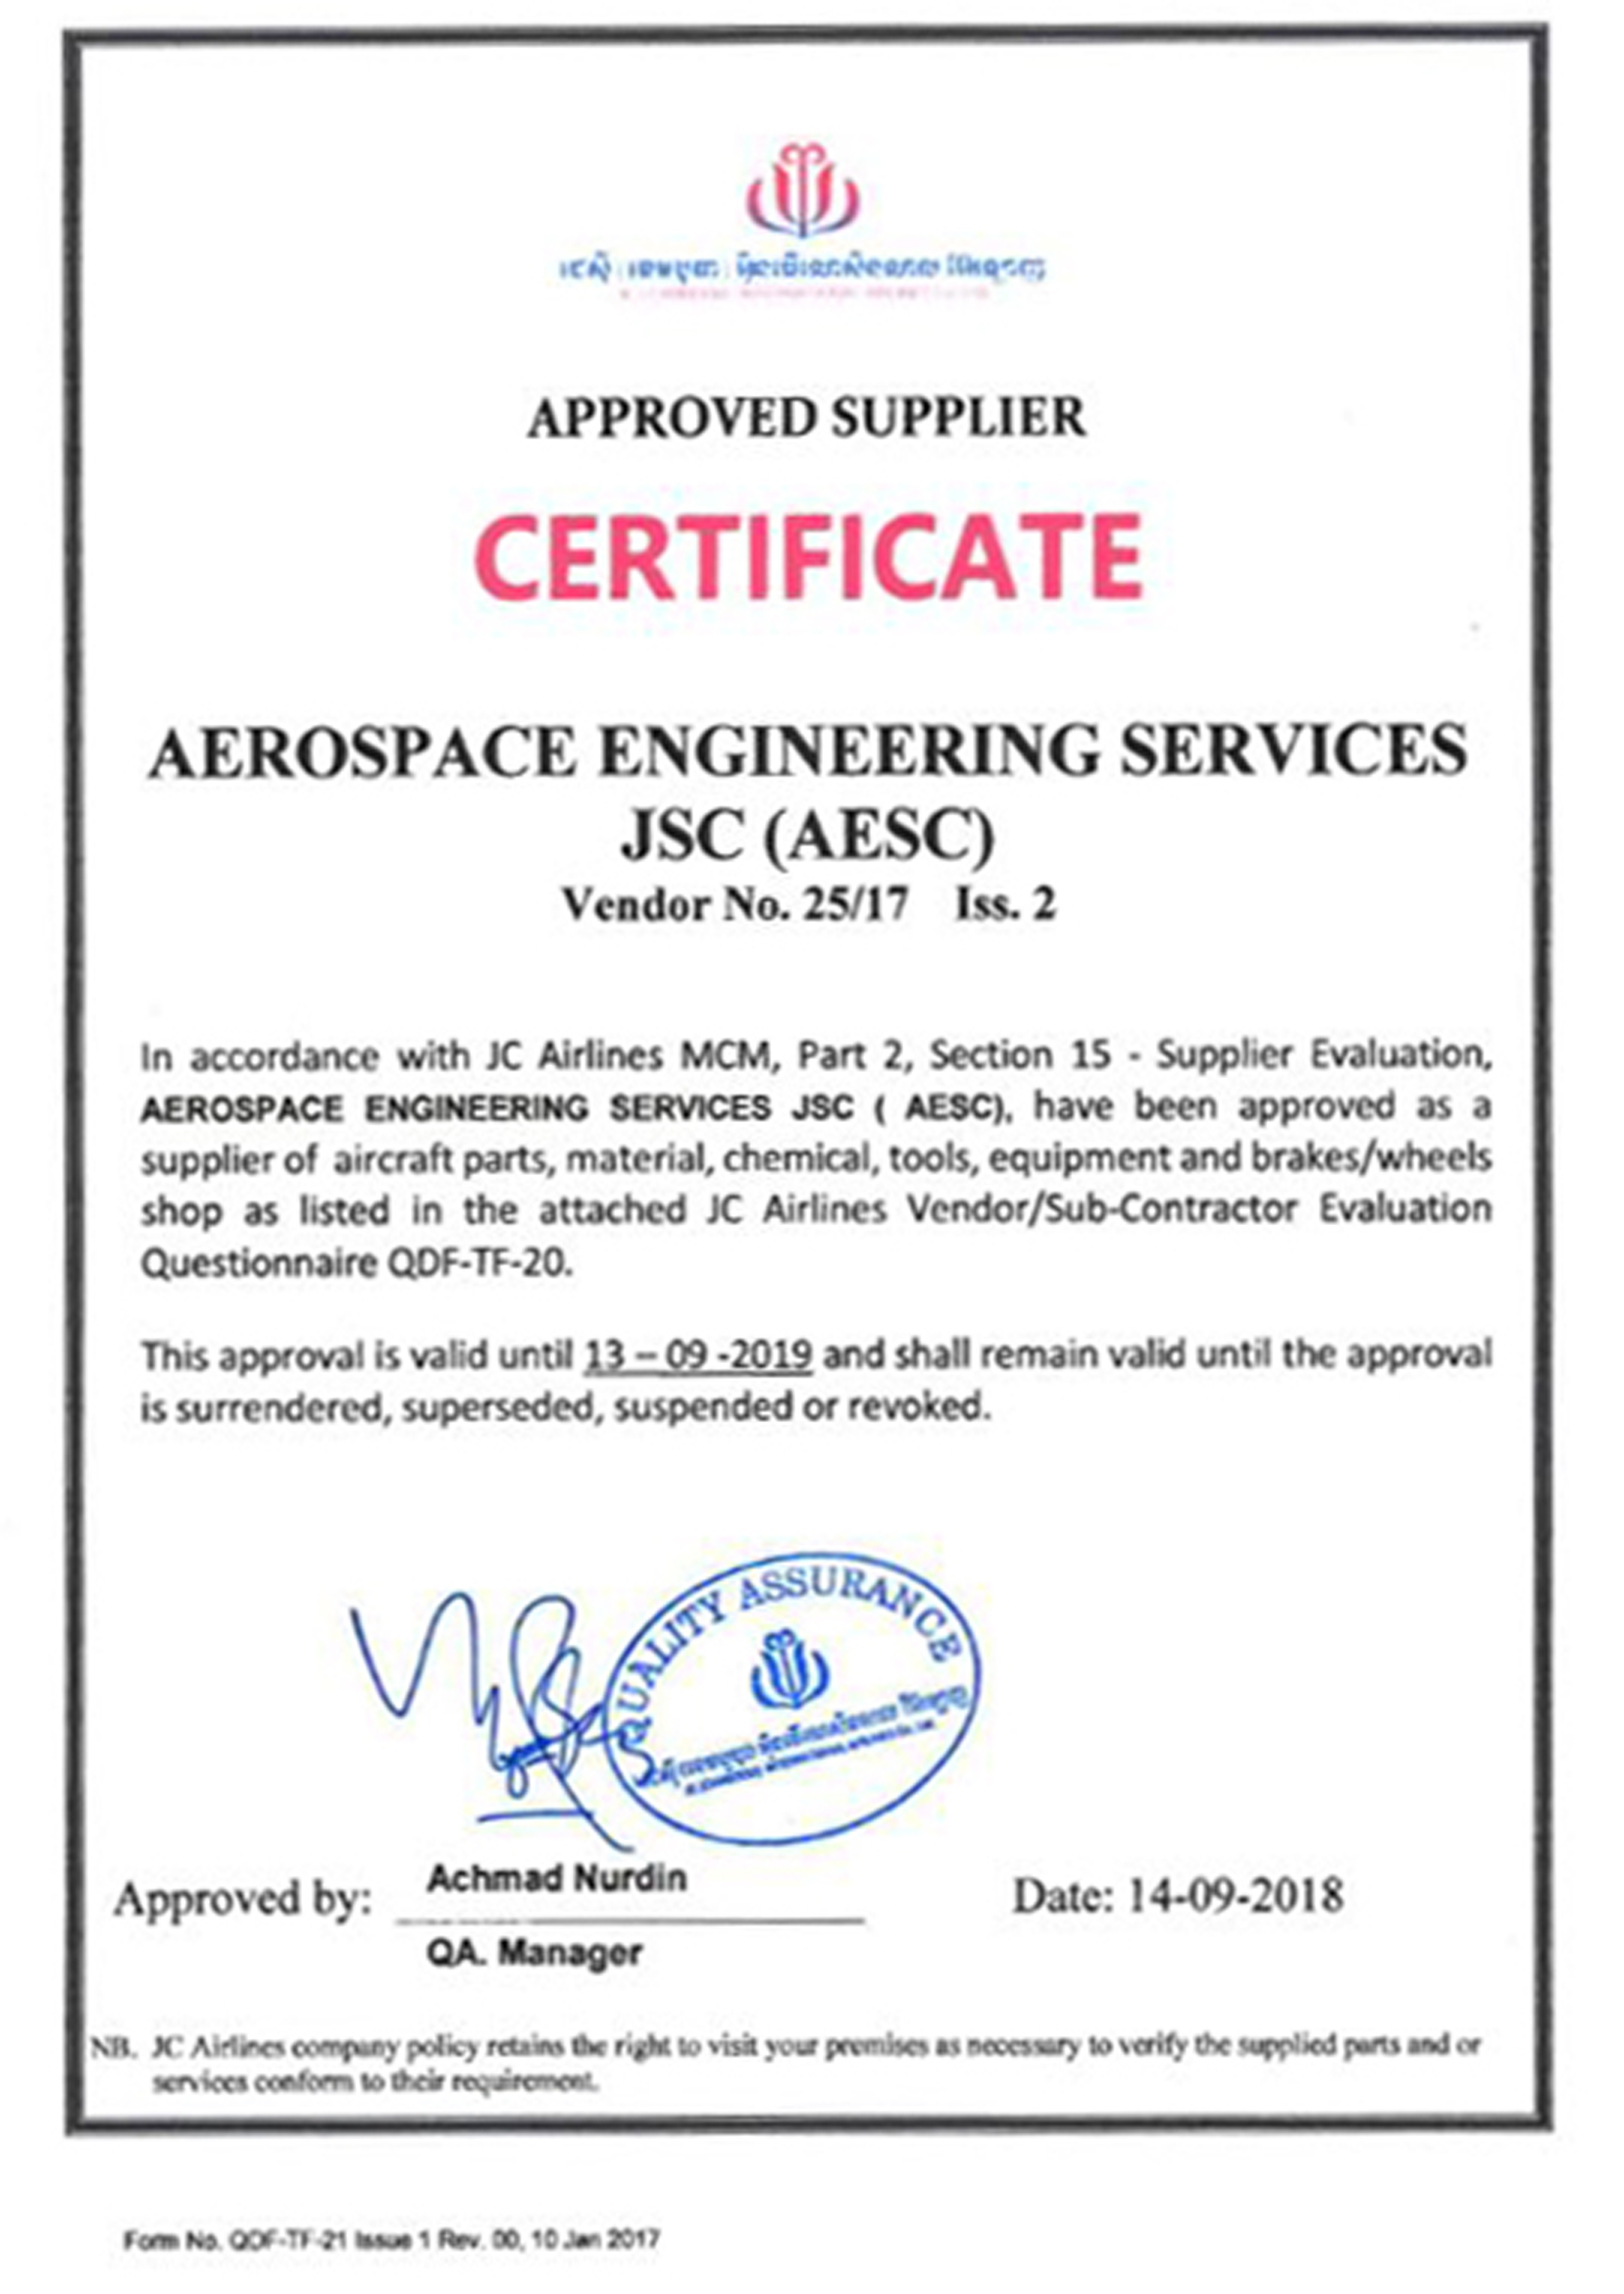 JC Airlines Approved Supplier Certificate